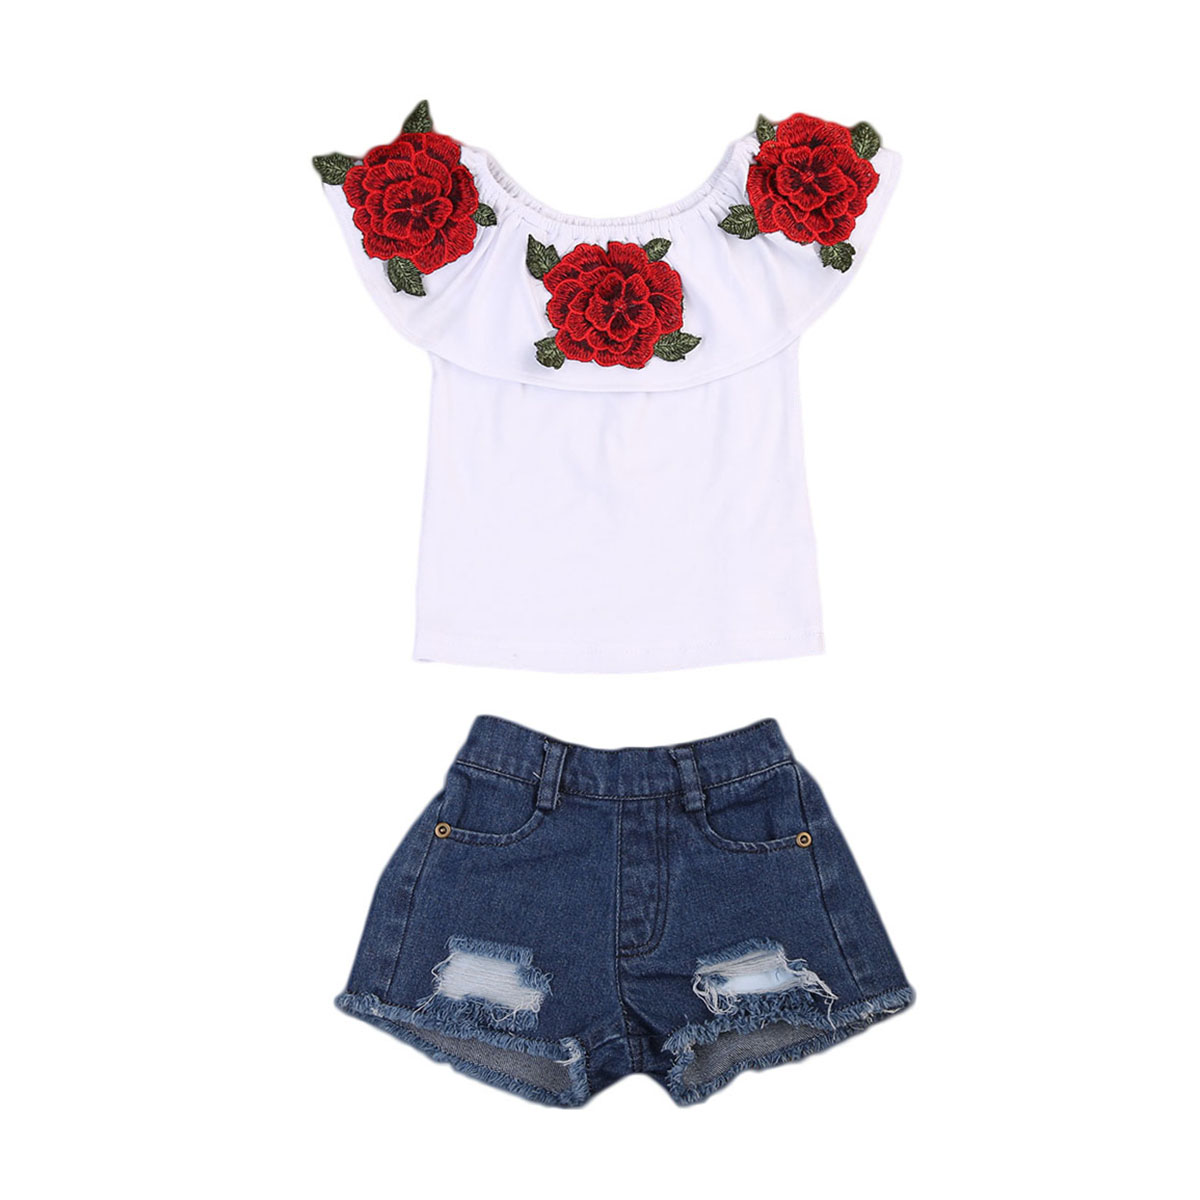 Intelligent Summer Kids Baby Girls Clothes T-shirt Tops+jeans Pants Shorts Outfits 2pcs Set Good Companions For Children As Well As Adults Outfits & Sets